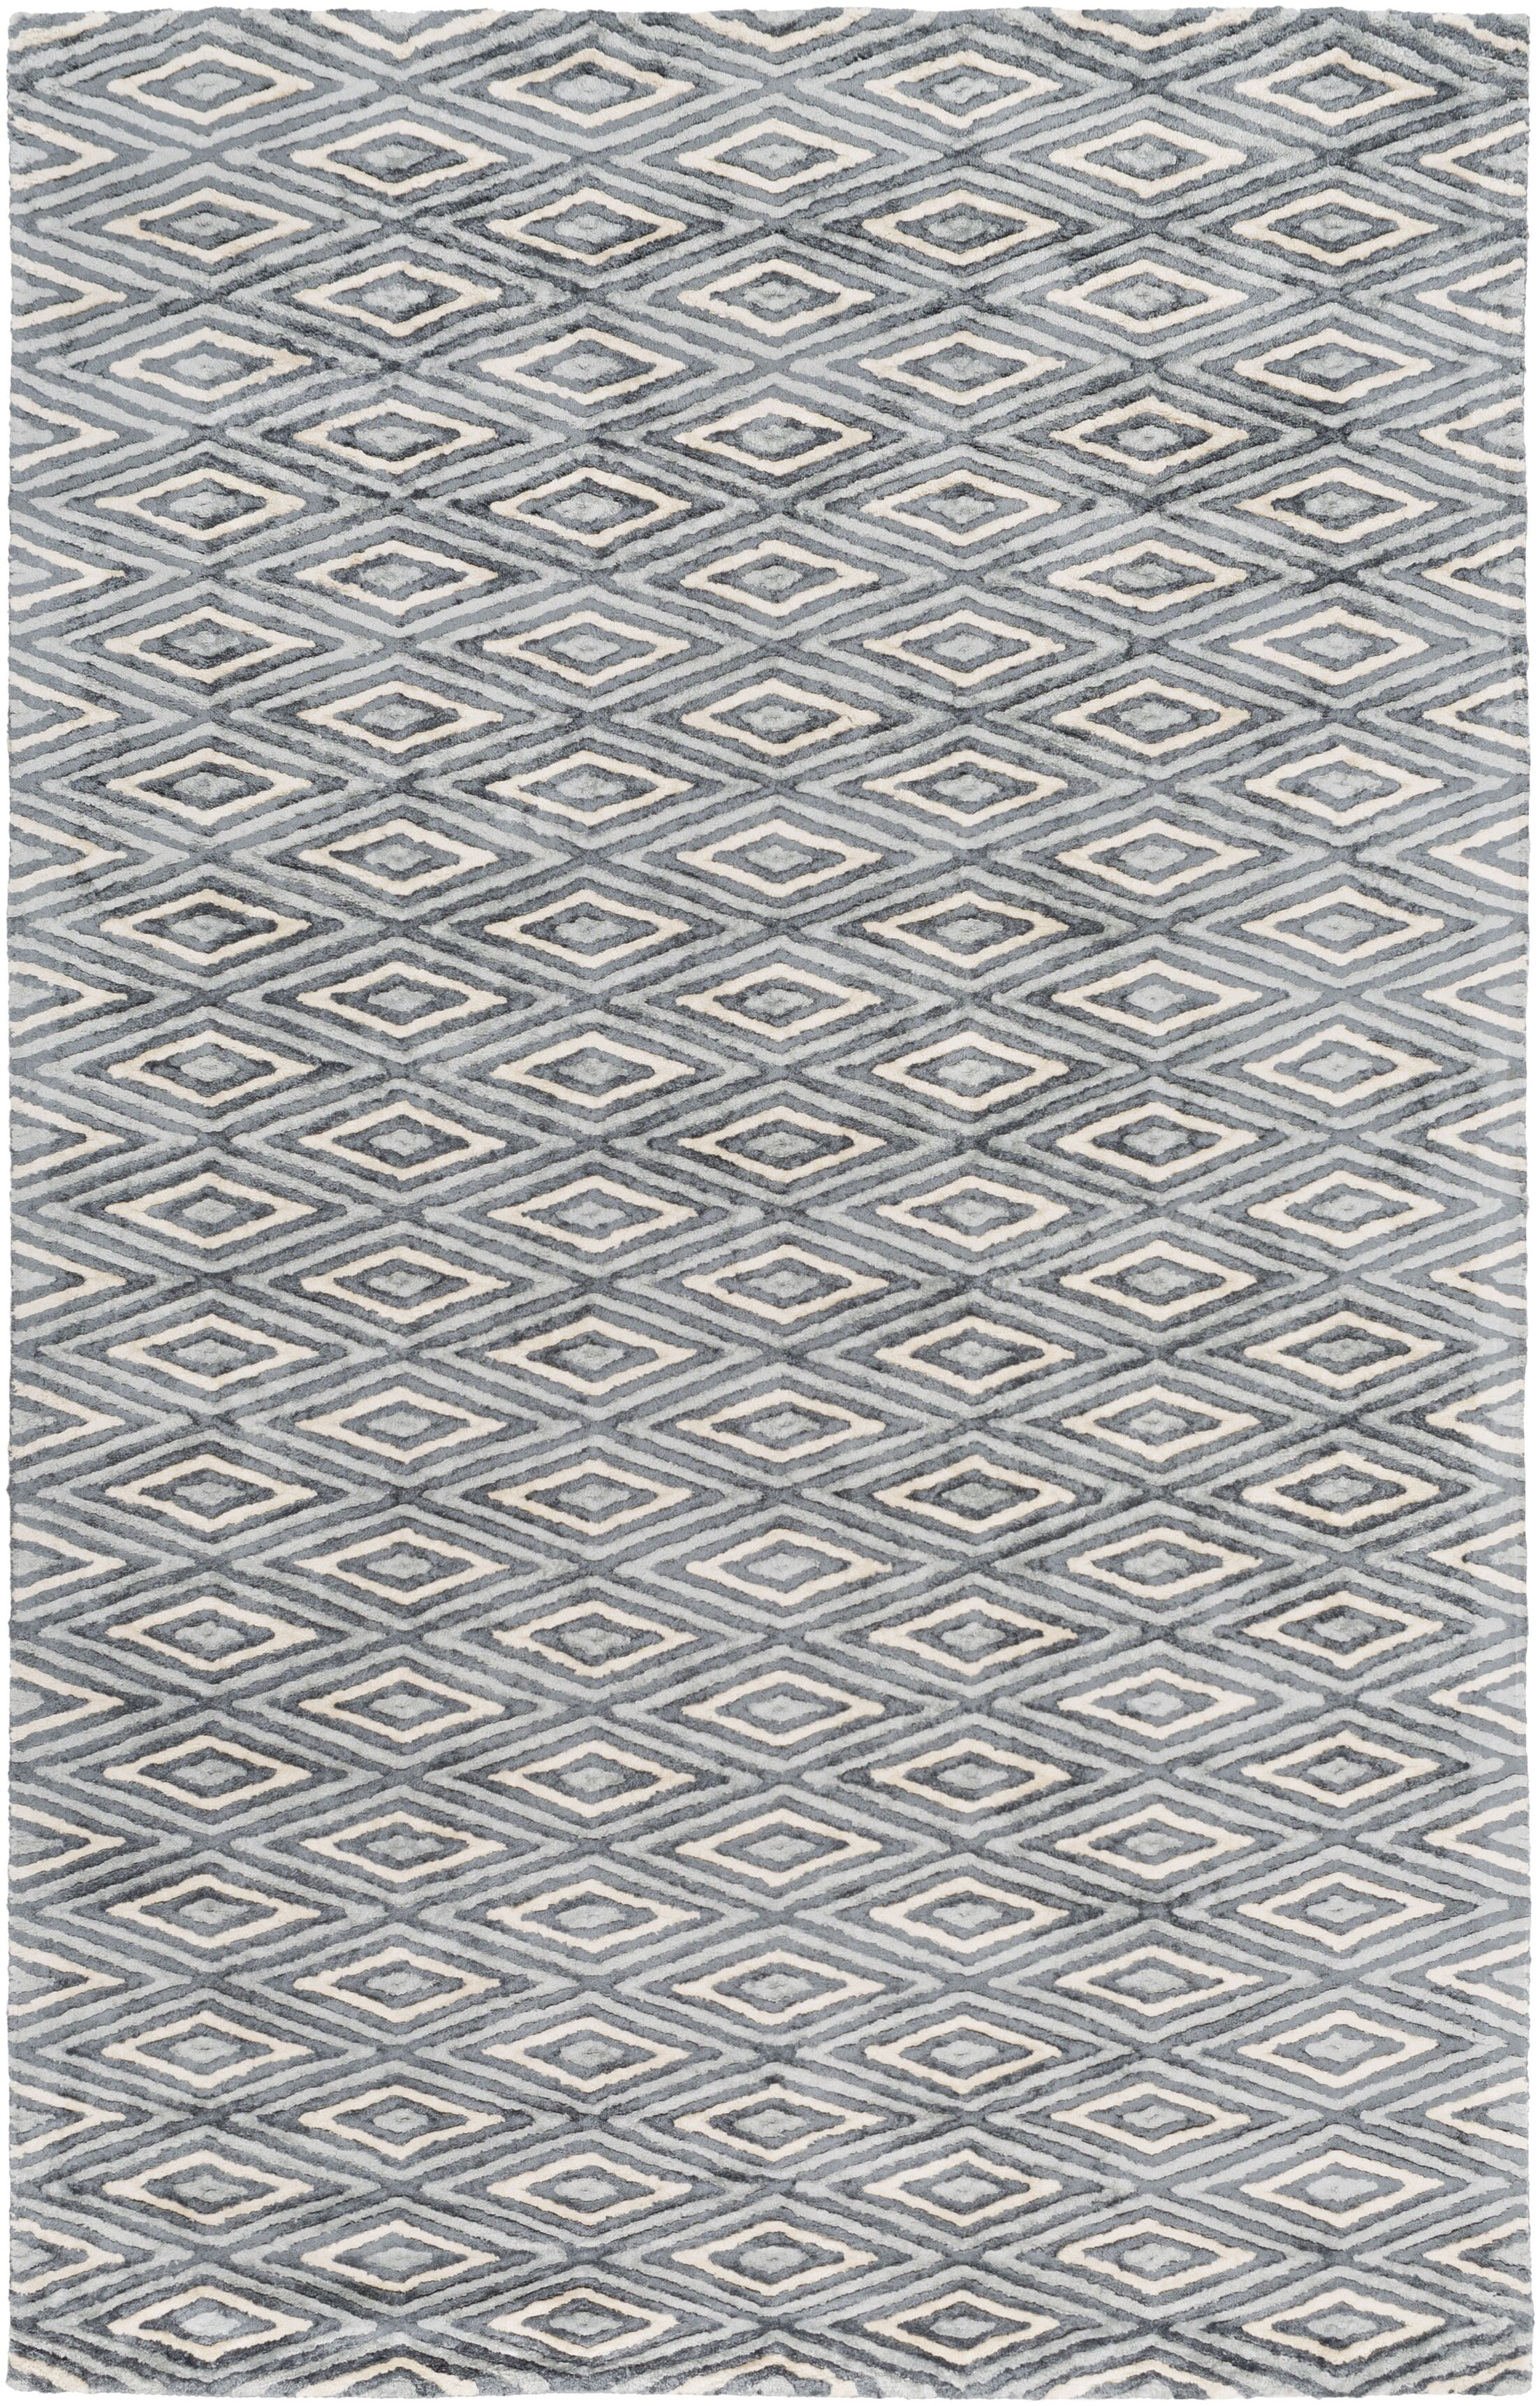 Arenas Hand-Woven Charcoal/Ivory Area Rug Rug Size: Rectangle 6' x 9'